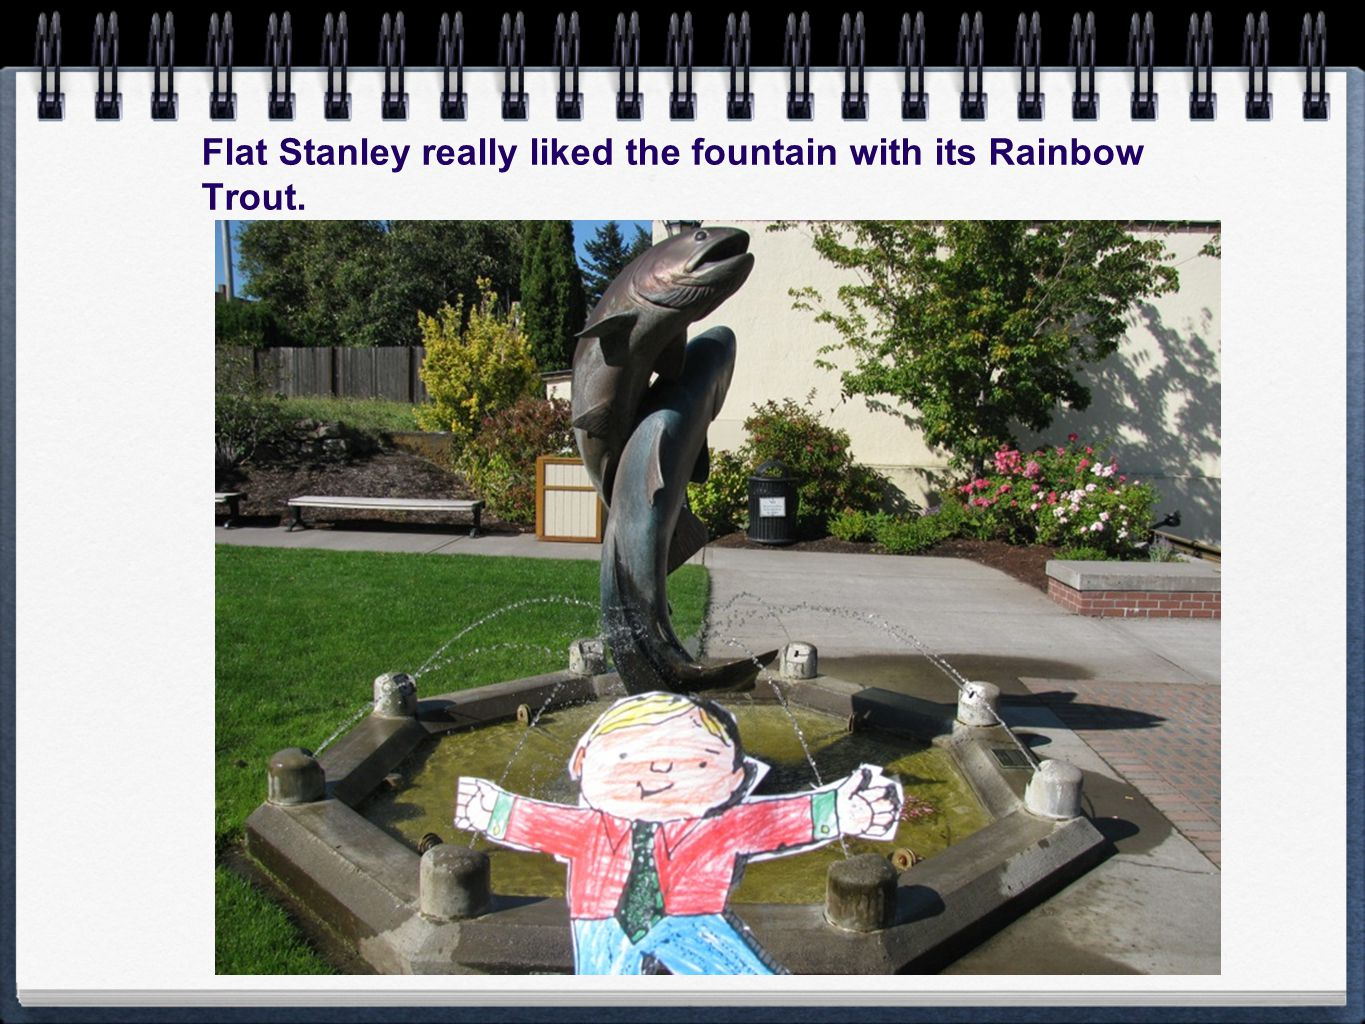 Flat Stanley really liked the fountain with its Rainbow Trout.